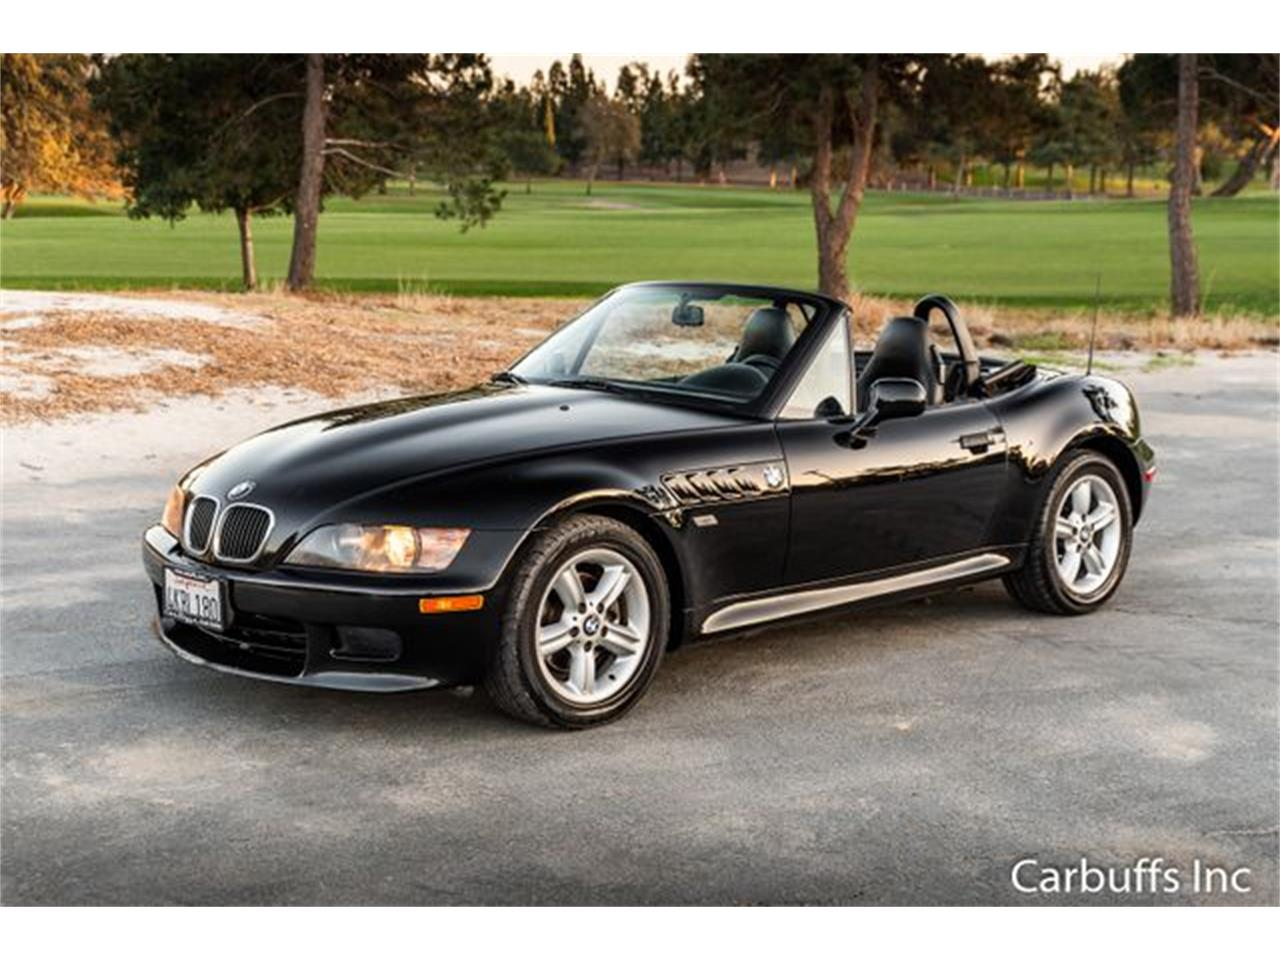 for sale 2000 bmw z3 in concord, california cars - concord, ca at geebo